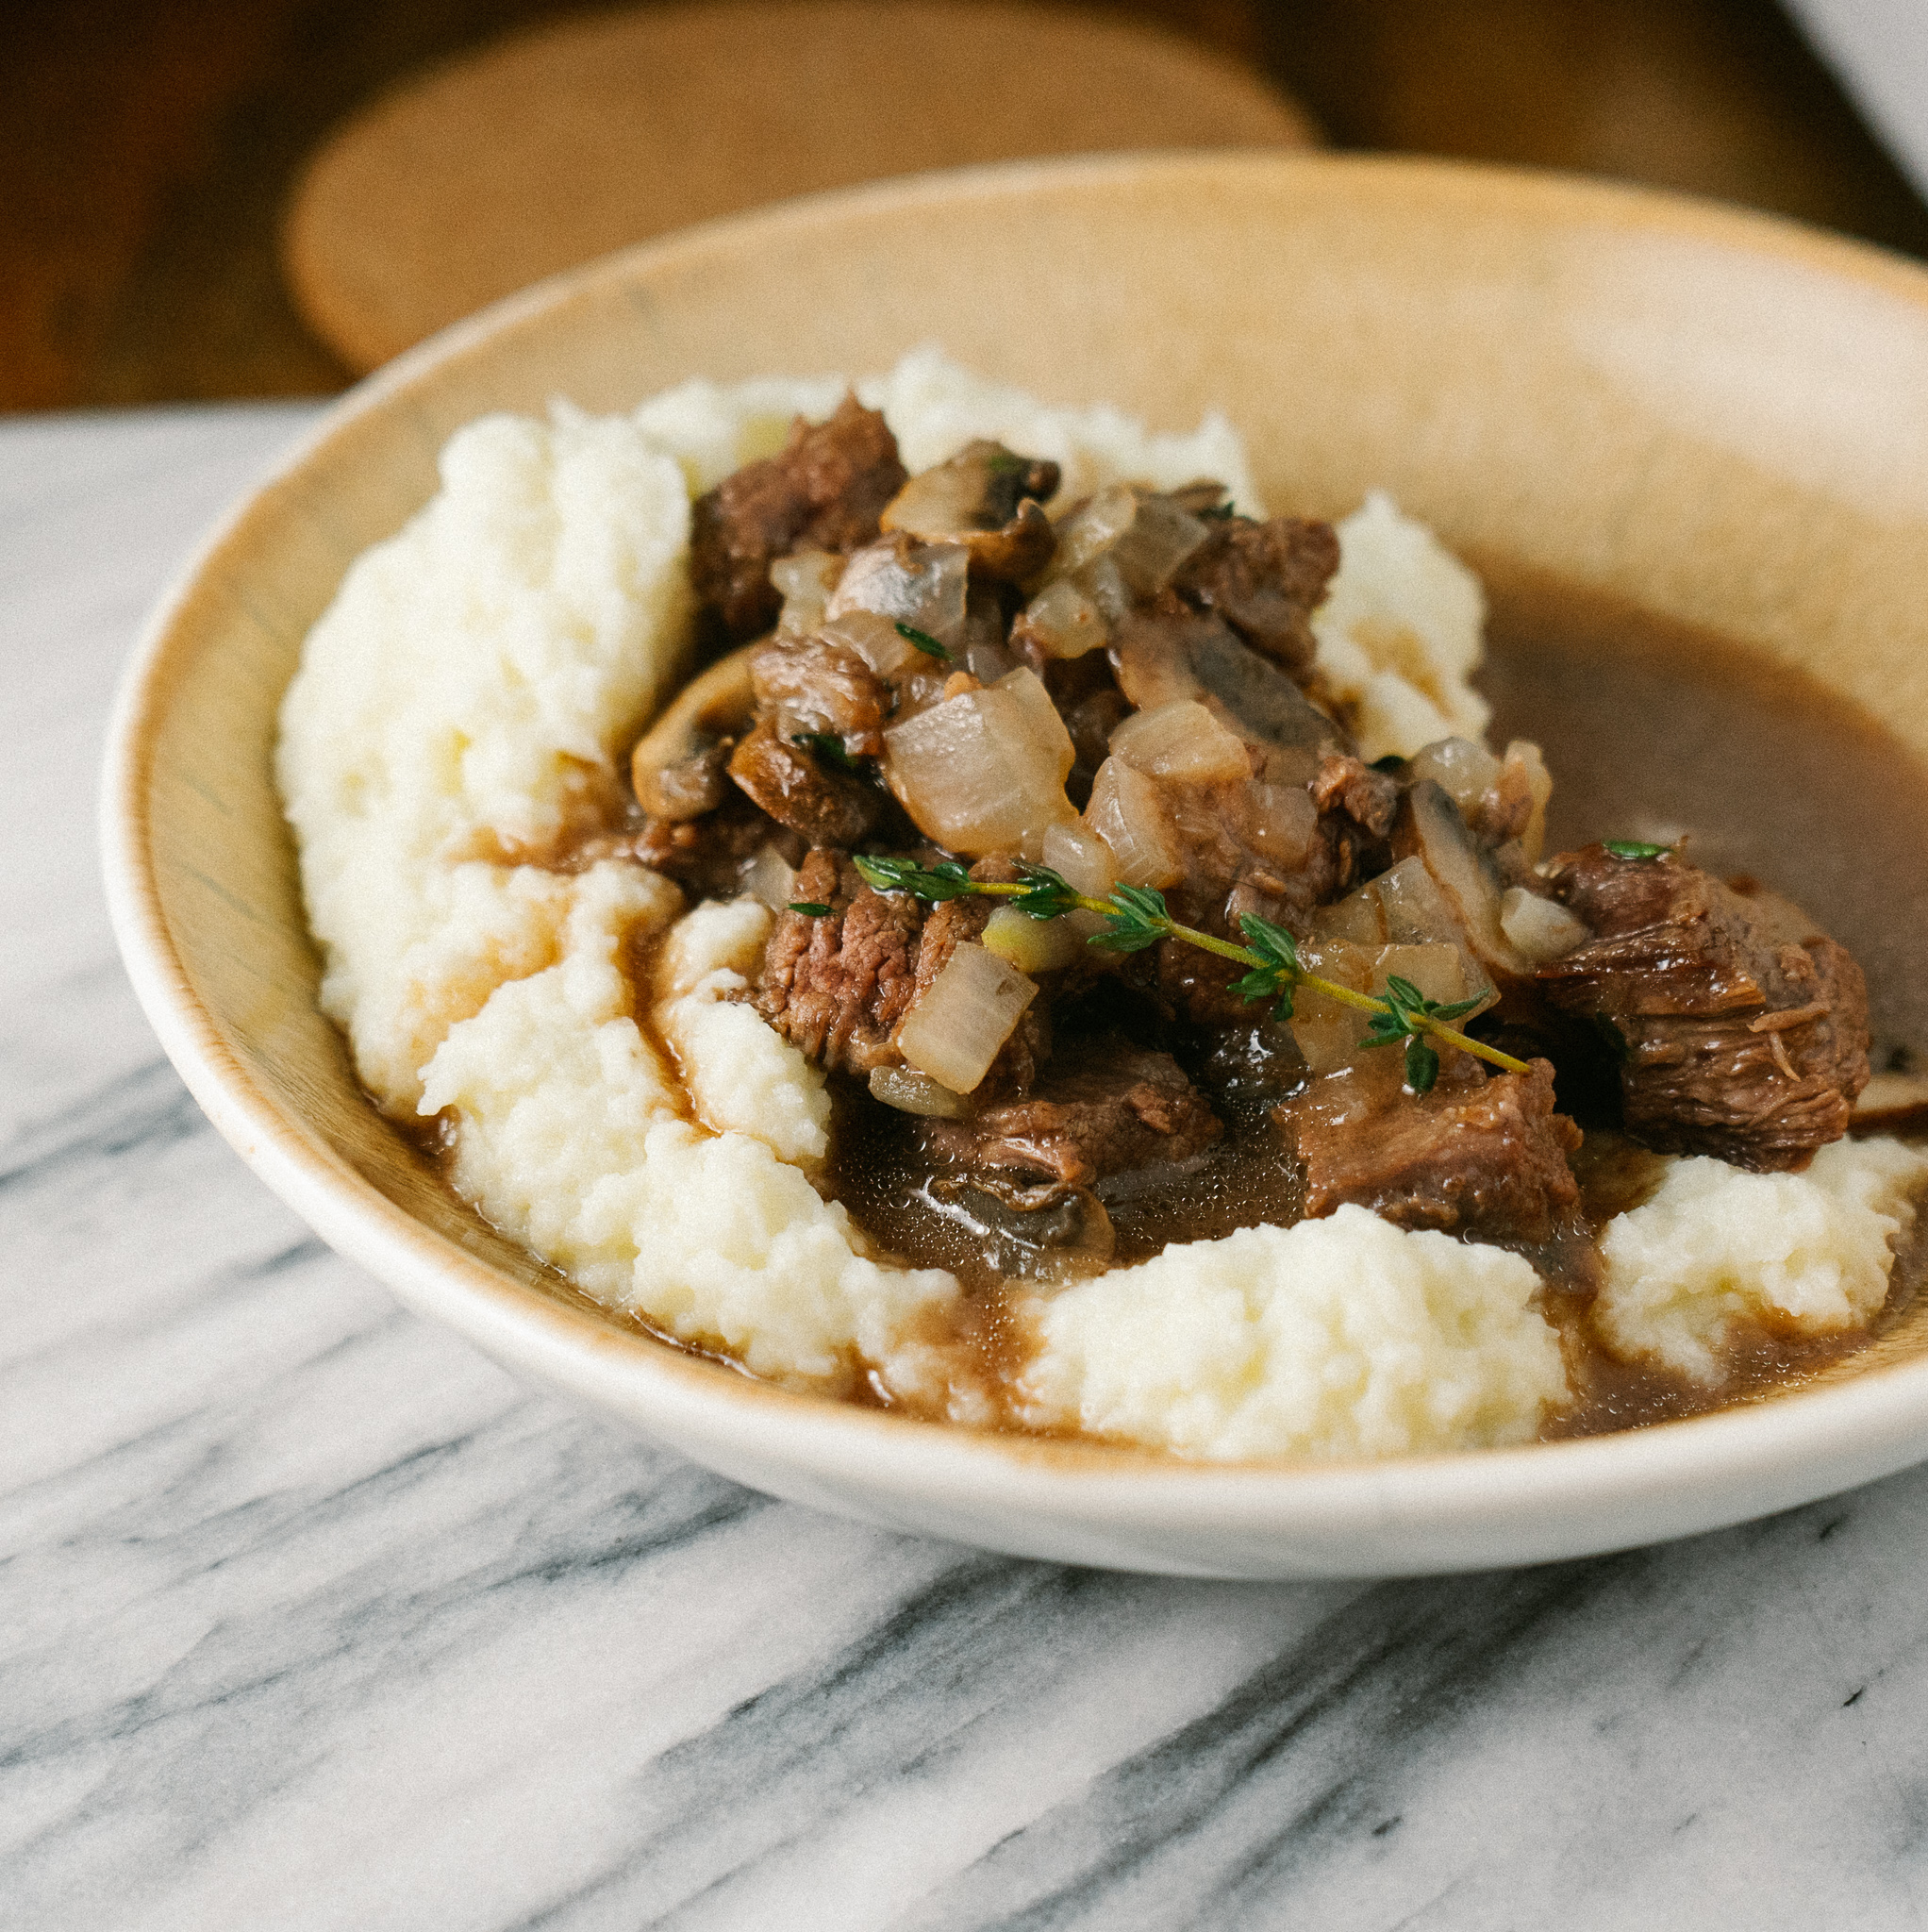 This beef and mushroom skillet with caulfilower mash is the perfect comforting dinner that you can make on a low carb/keto diet and can be whole30 friendly! This comforting meal comes together in 30 minutes. Add this to your healthy weeknight dinner rotation.